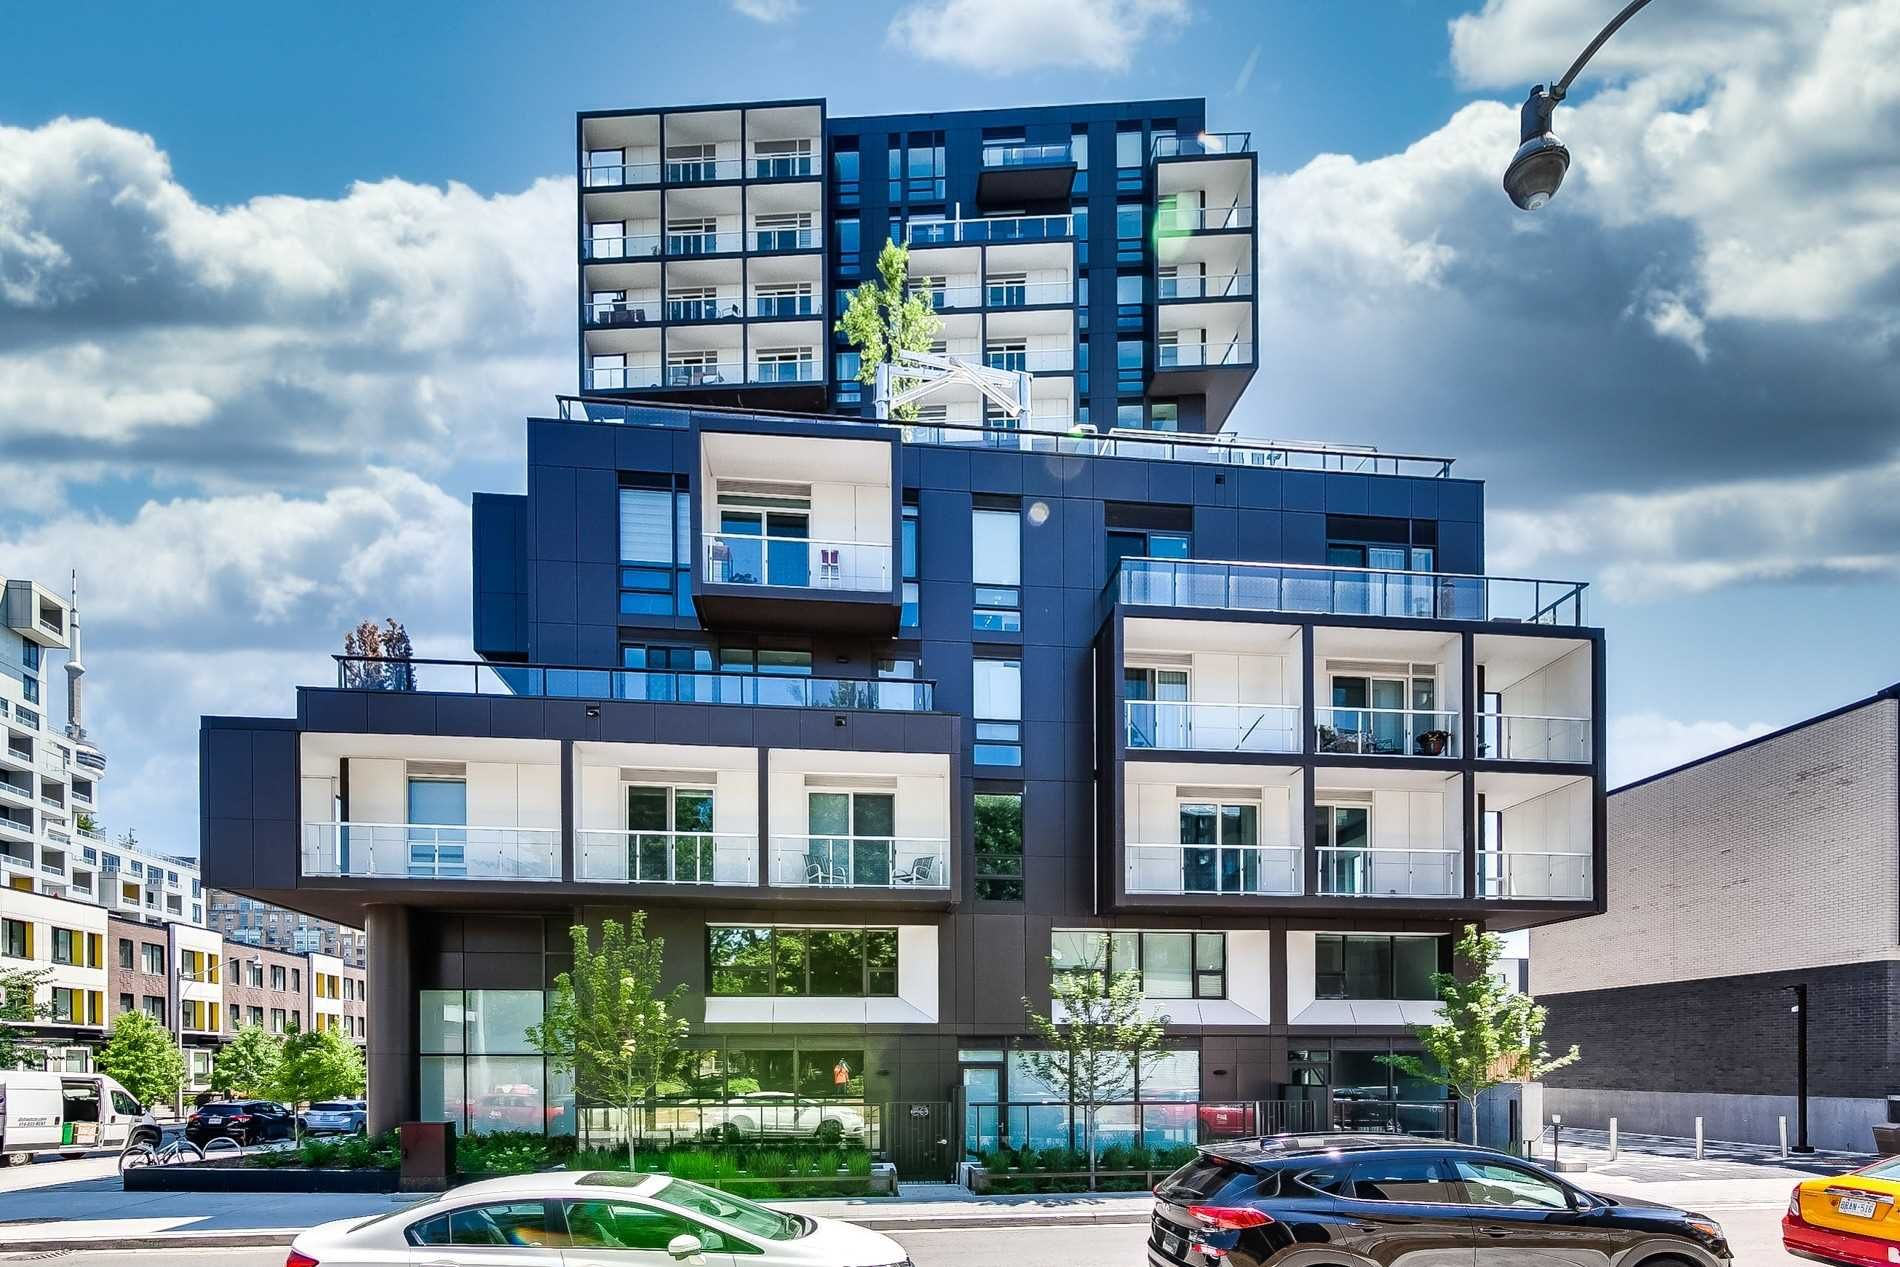 80 Vanauley St, unit 108 for sale in Toronto - image #2